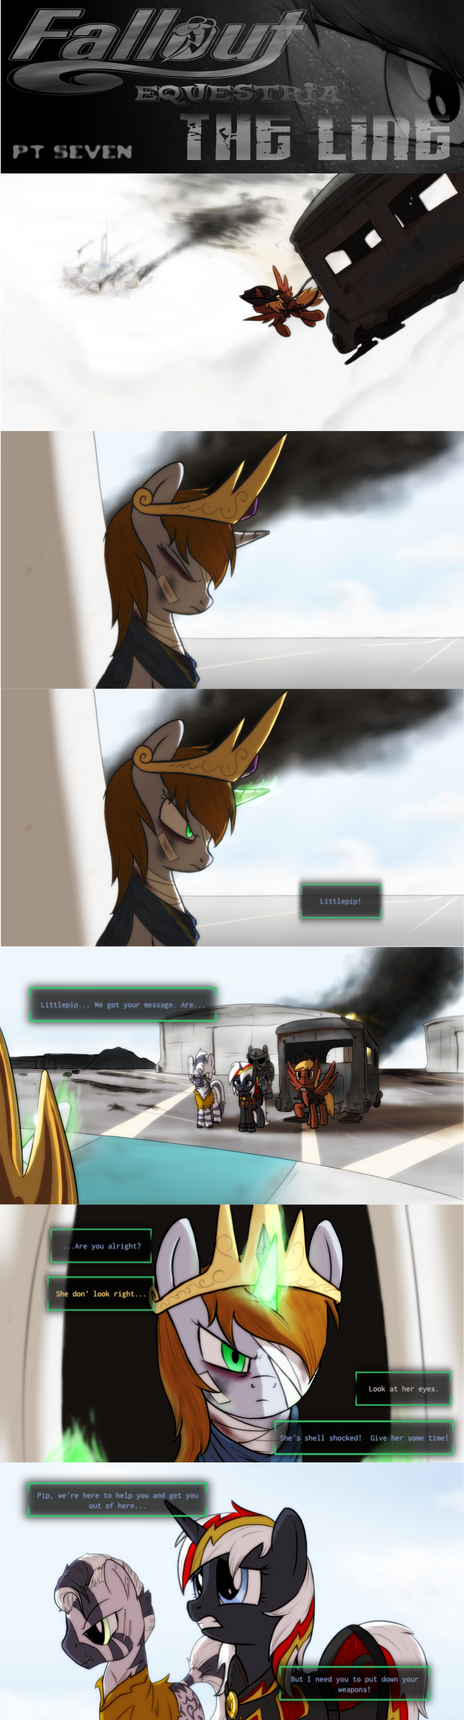 COMMISSION - Fallout Equestria: The Line (Pt 7) by Brisineo